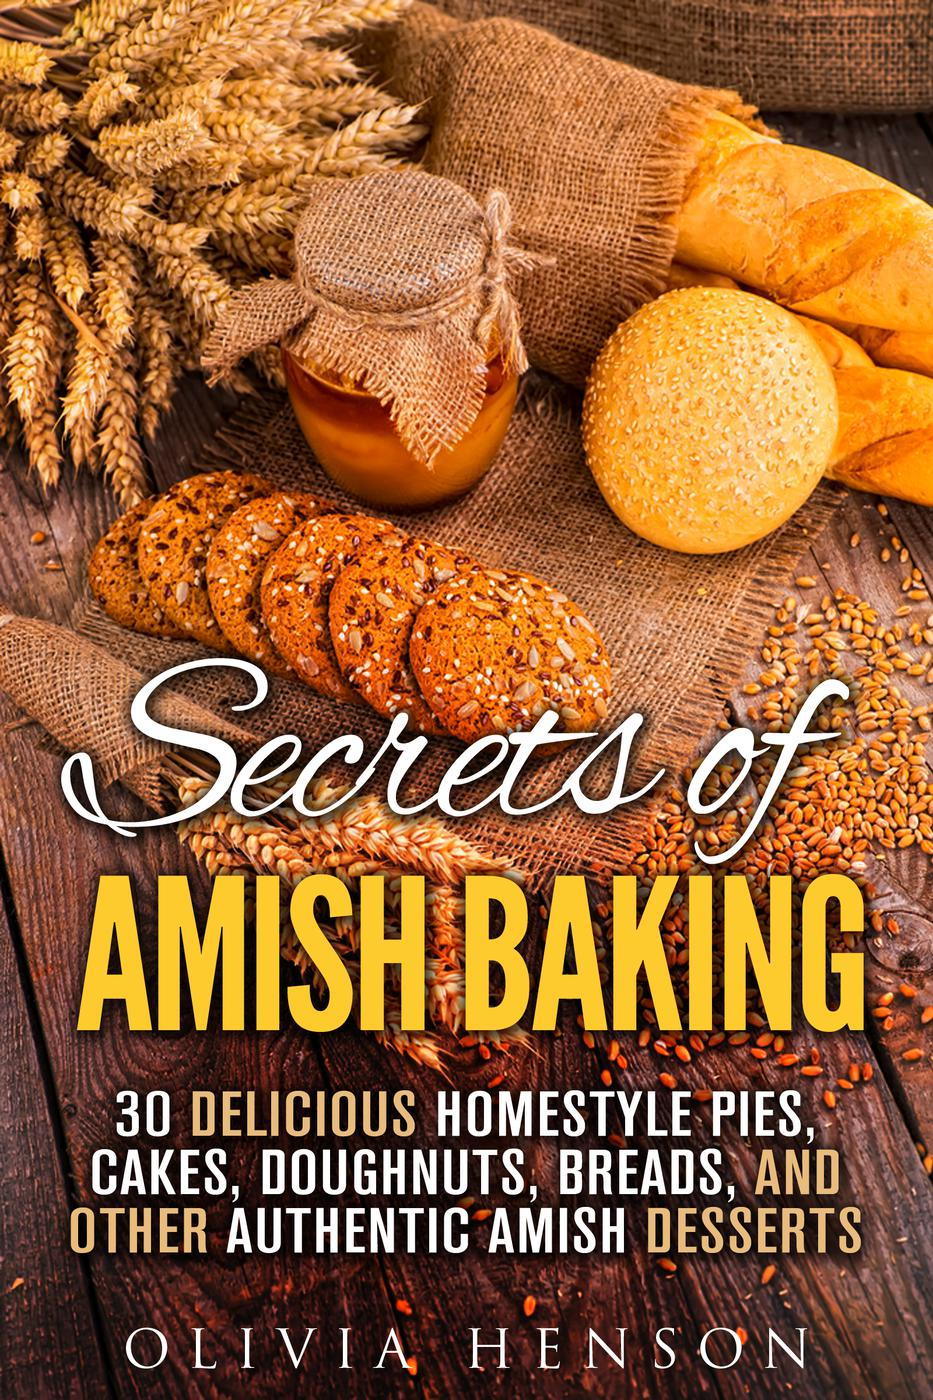 Secrets of Amish Baking: 30 Delicious Homestyle Pies, Cakes, Doughnuts, Breads, and Other Authentic Amish Desserts (Homestyle Baking & Amish Recipes)